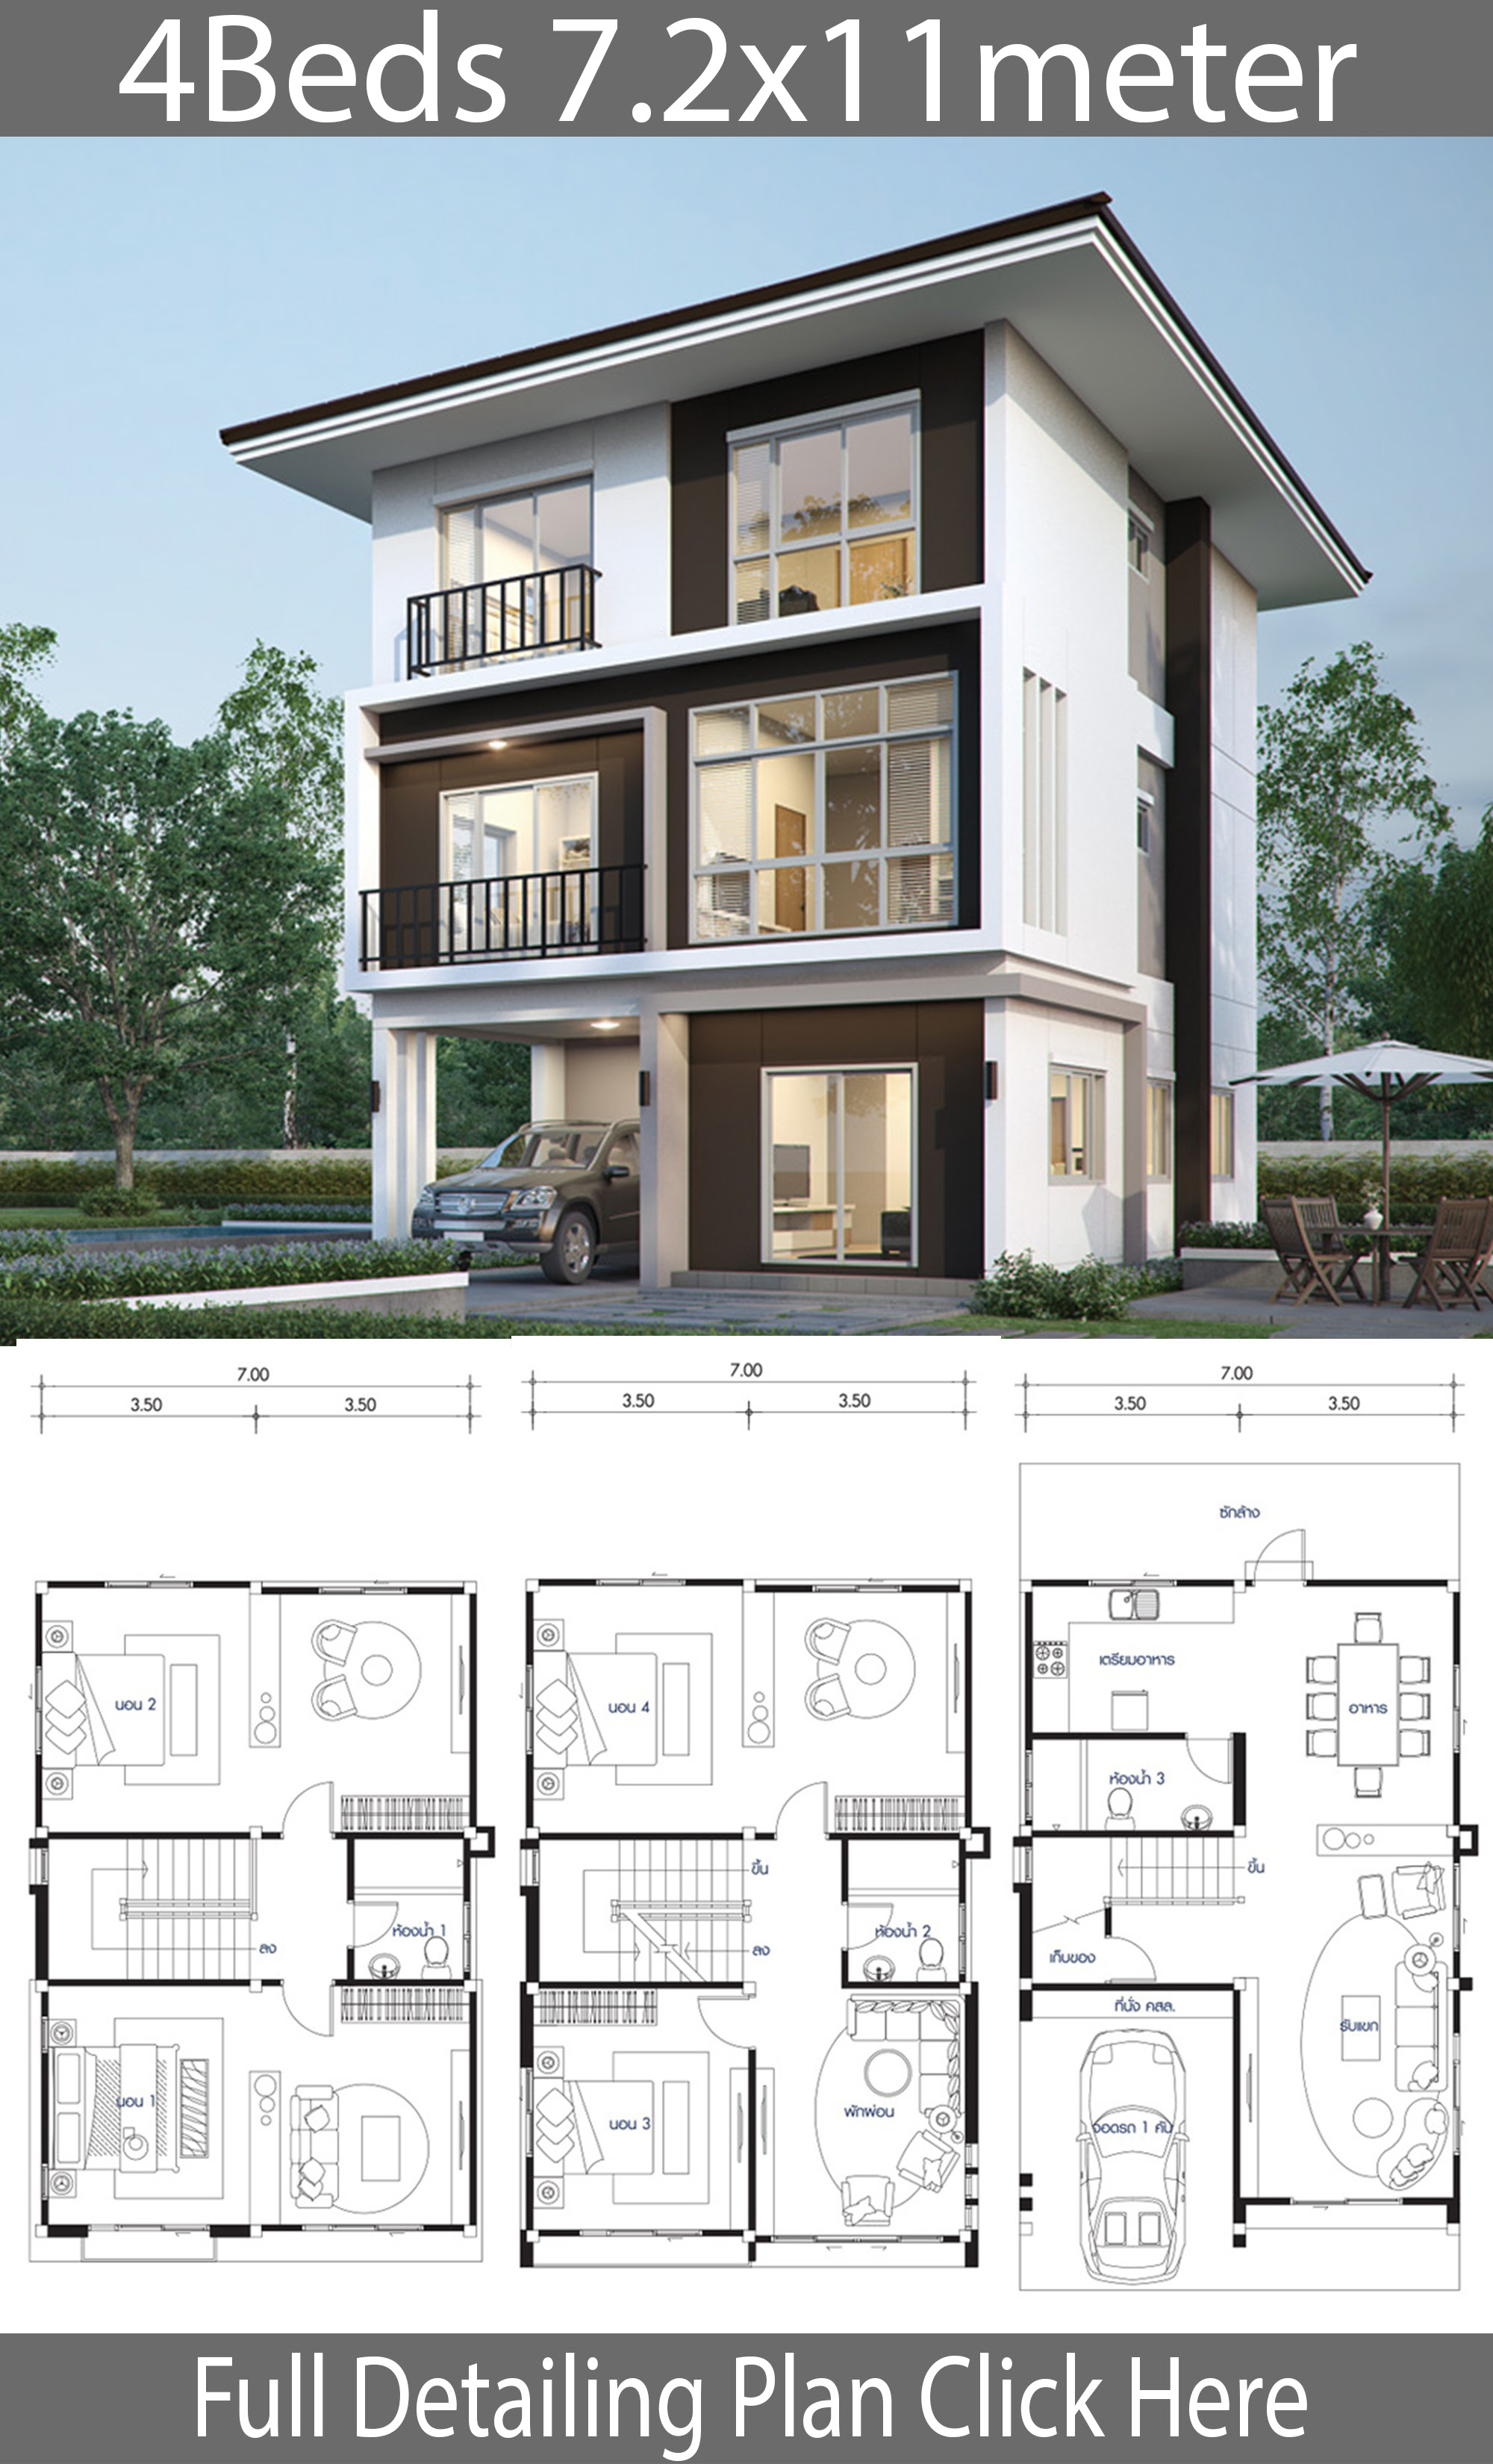 House design plan 7.2x11m with 4 bedrooms - House Plan Map